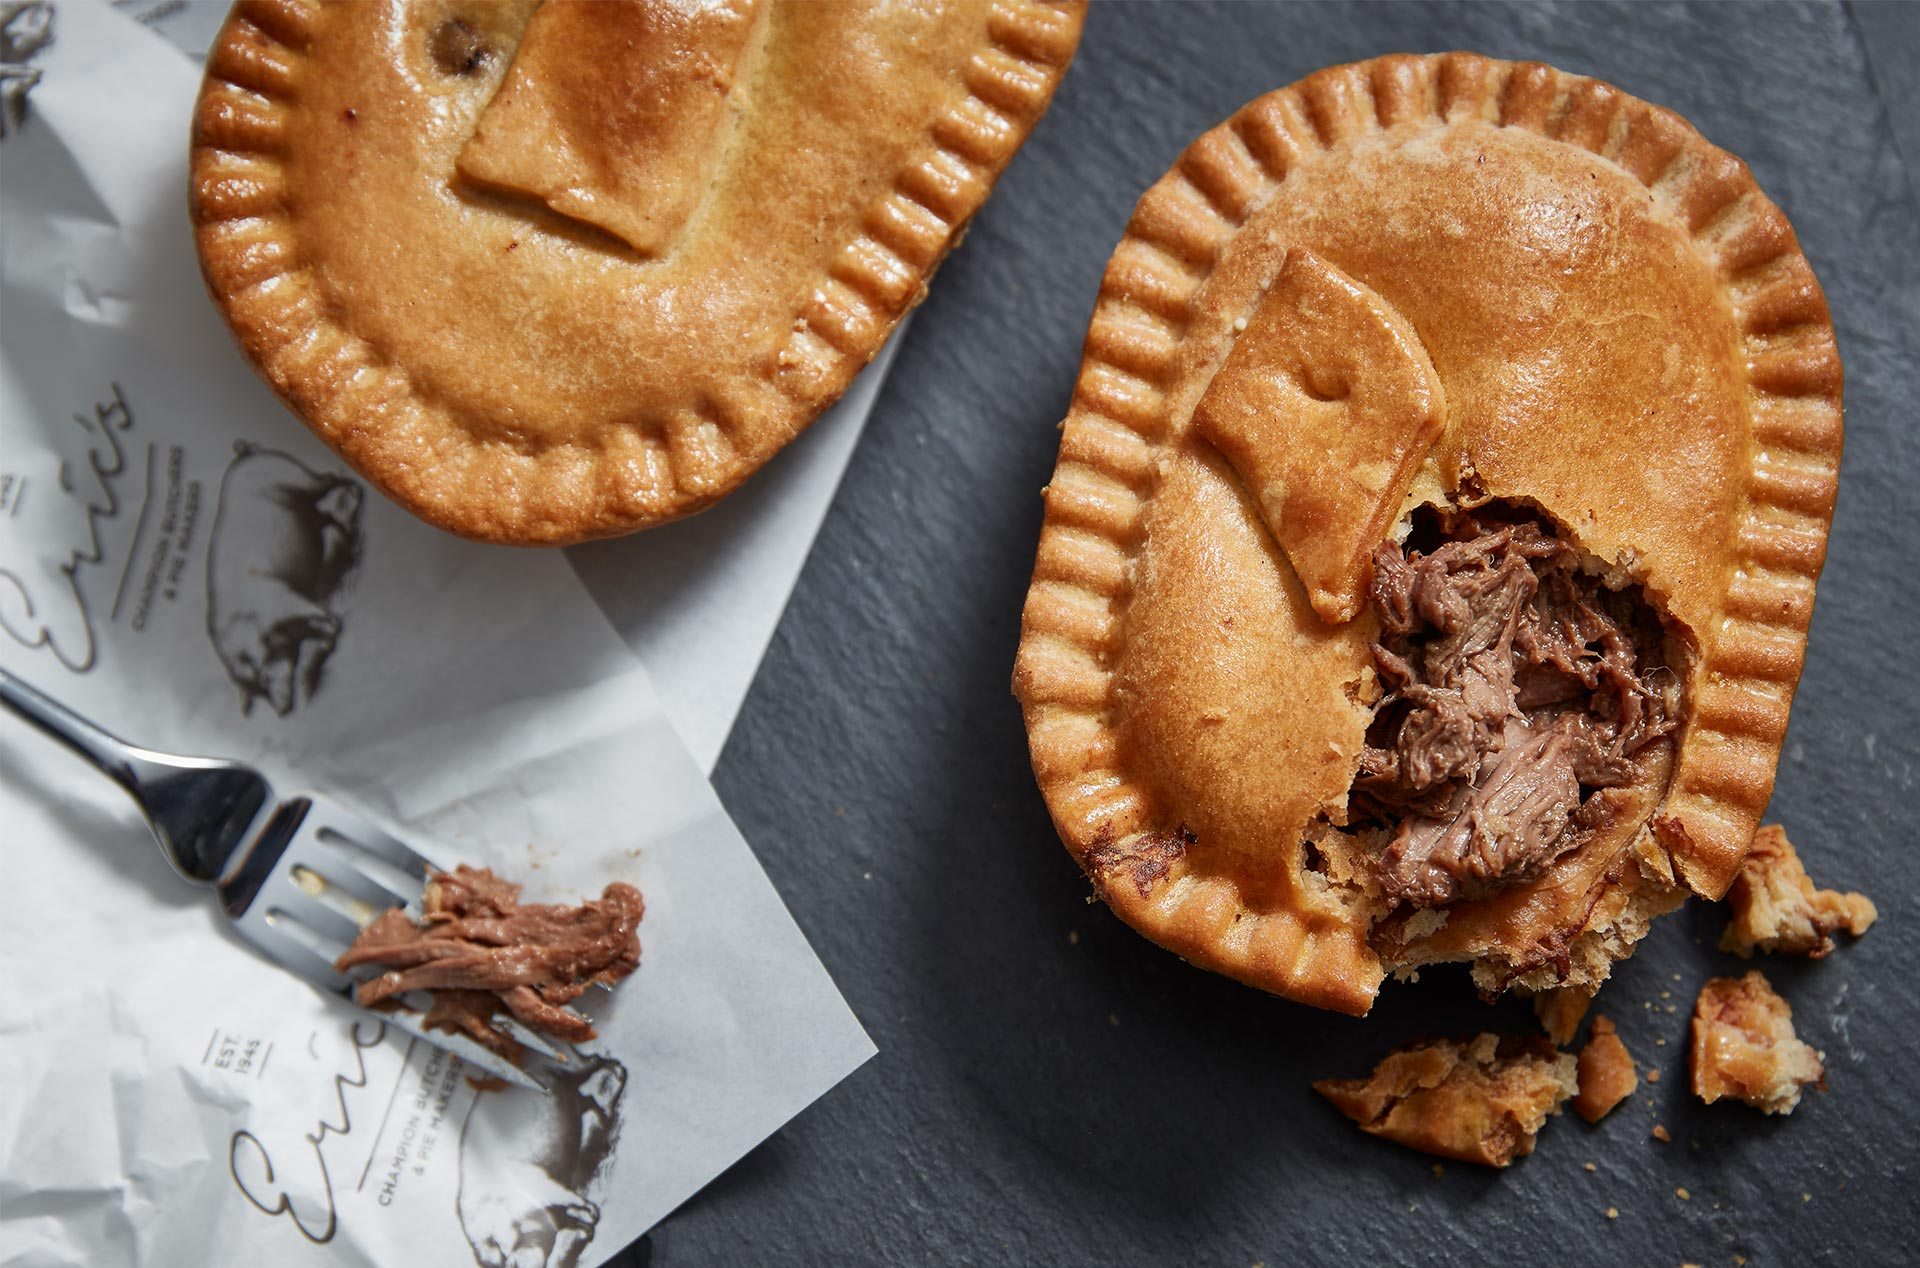 Pies on branded wrapping